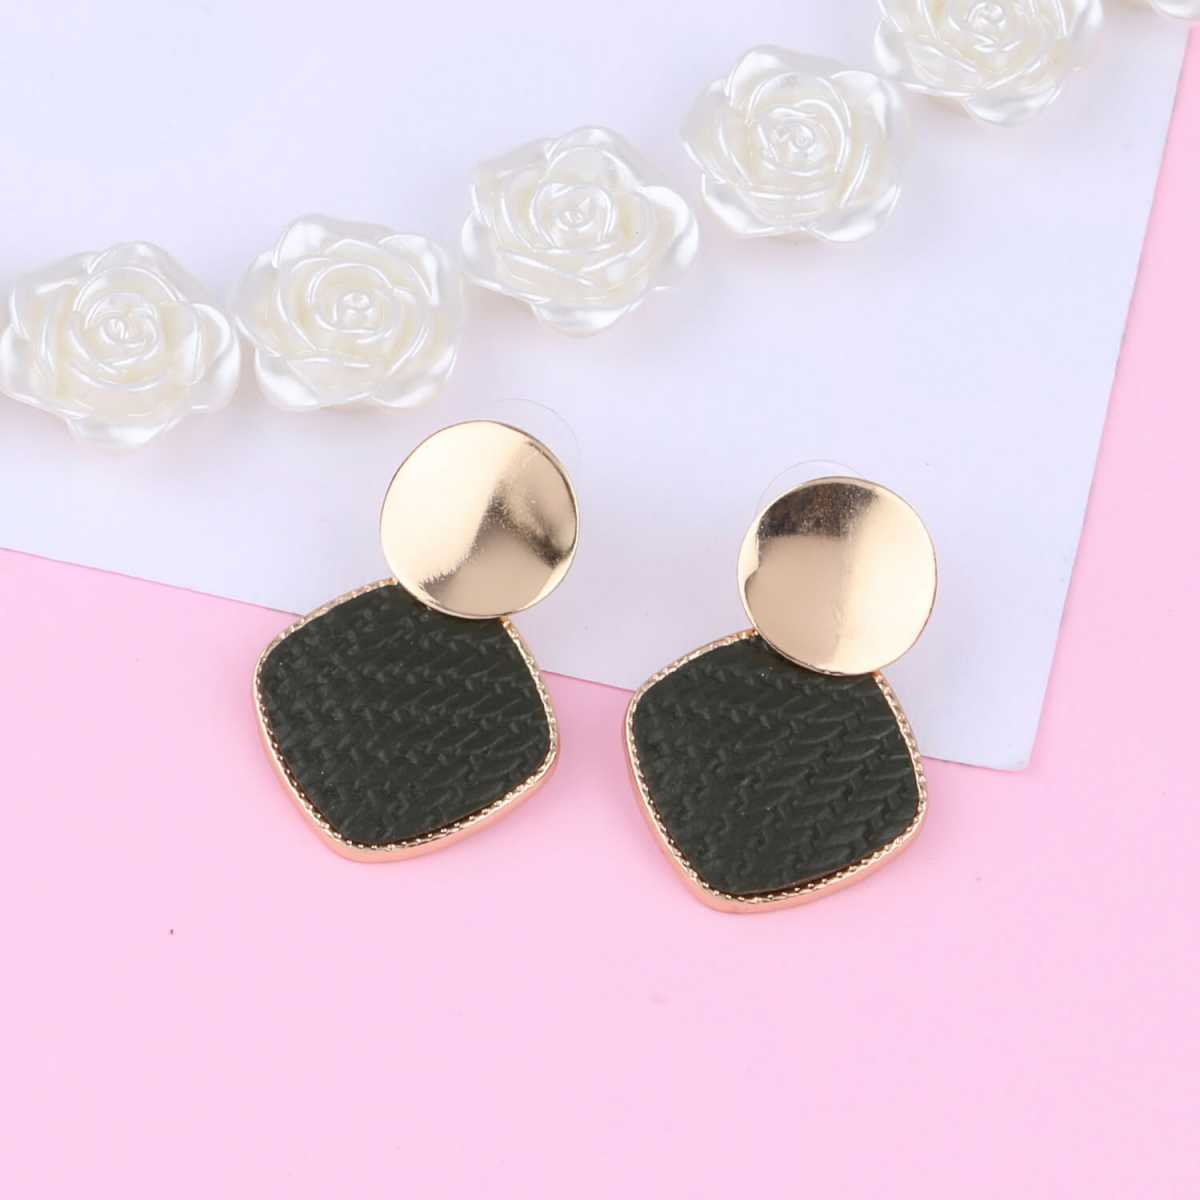 SILVER SHINE Stylish Party Wear Different Designe Studs Earring For Women Girl